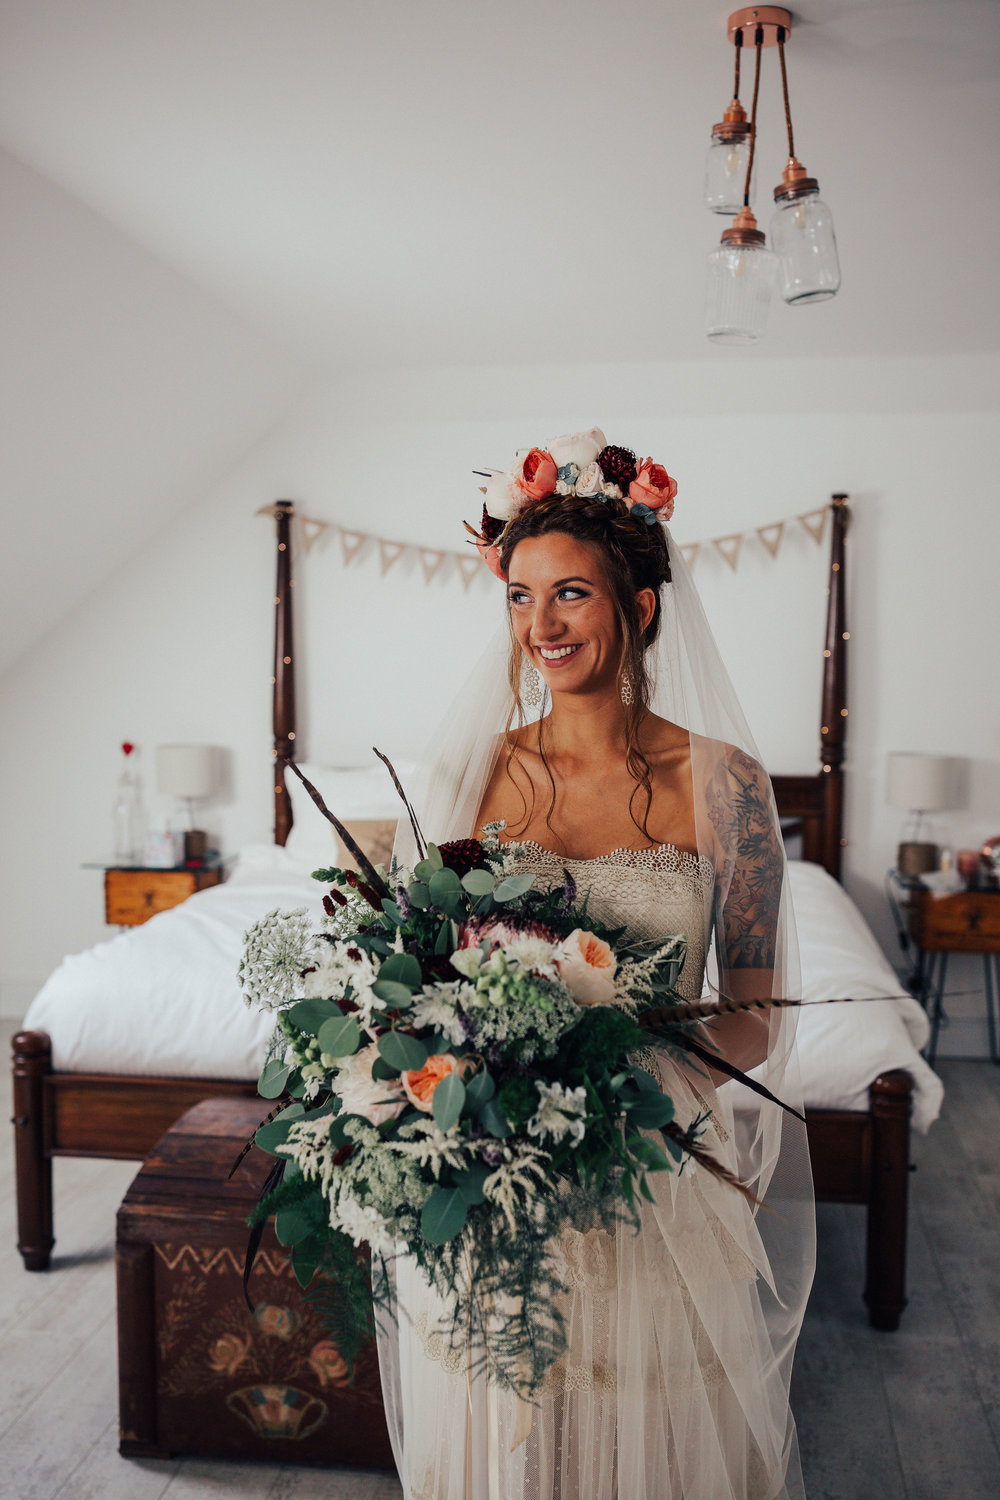 TWO_WOODS_ESTATE_WEDDING_PULBOROUGH_PJ_PHILLIPS_PHOTOGRAPHY_FRAN_&_GEORGE_58.jpg